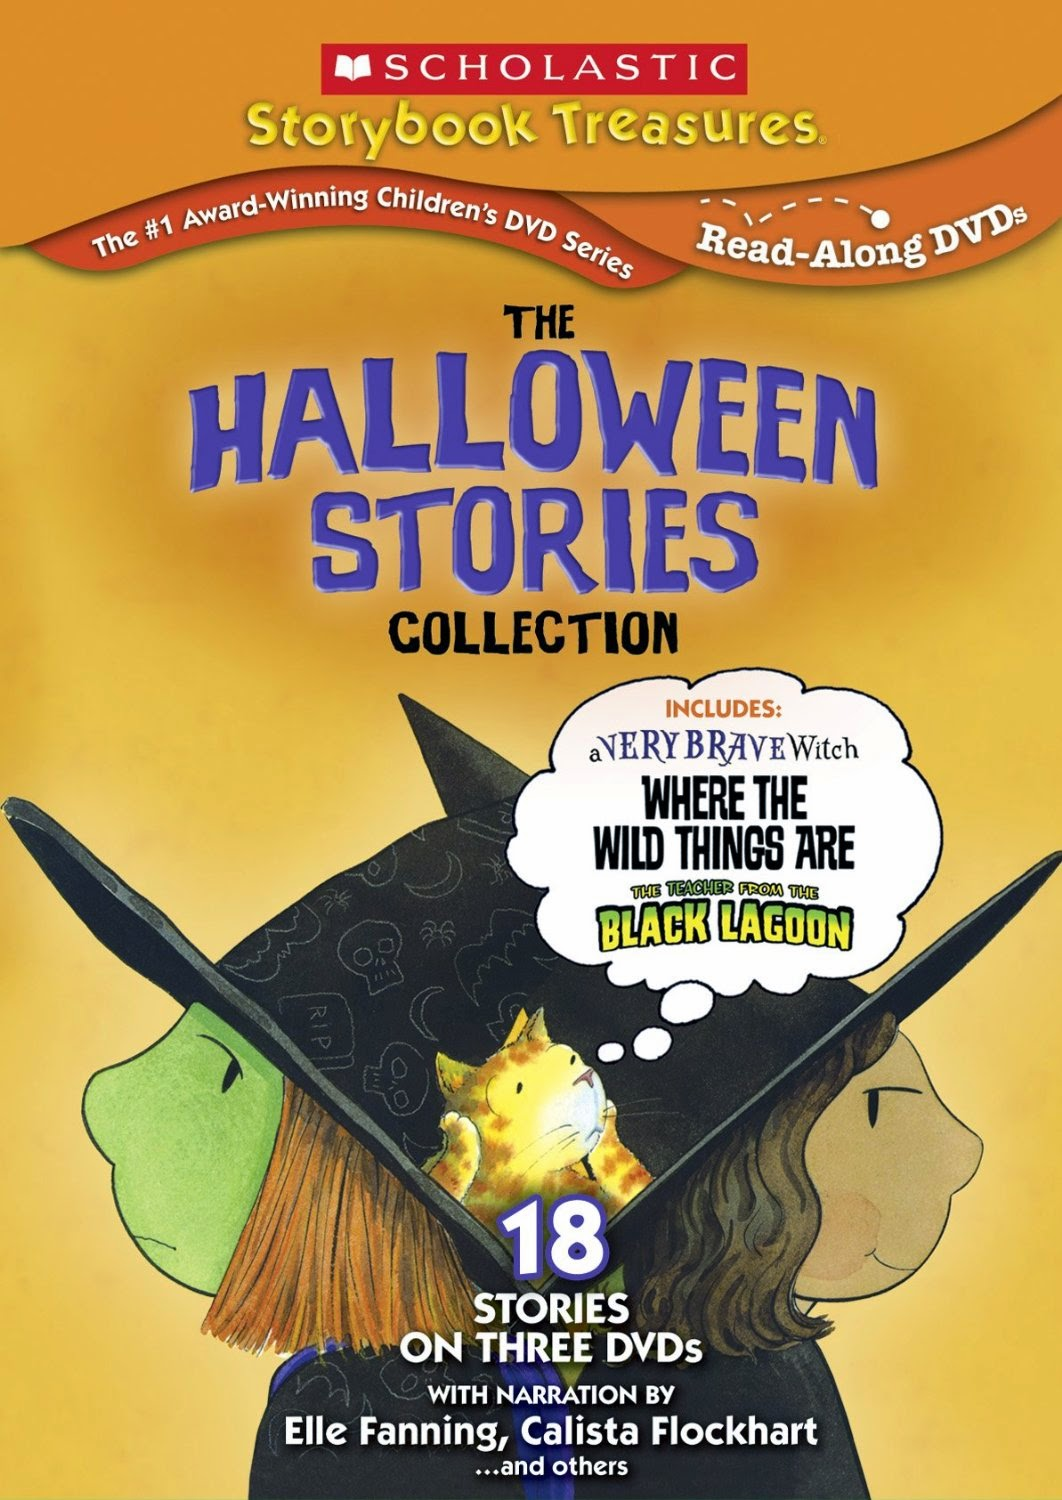 Scholastic Storybook Treasures used for Halloween Theme Week